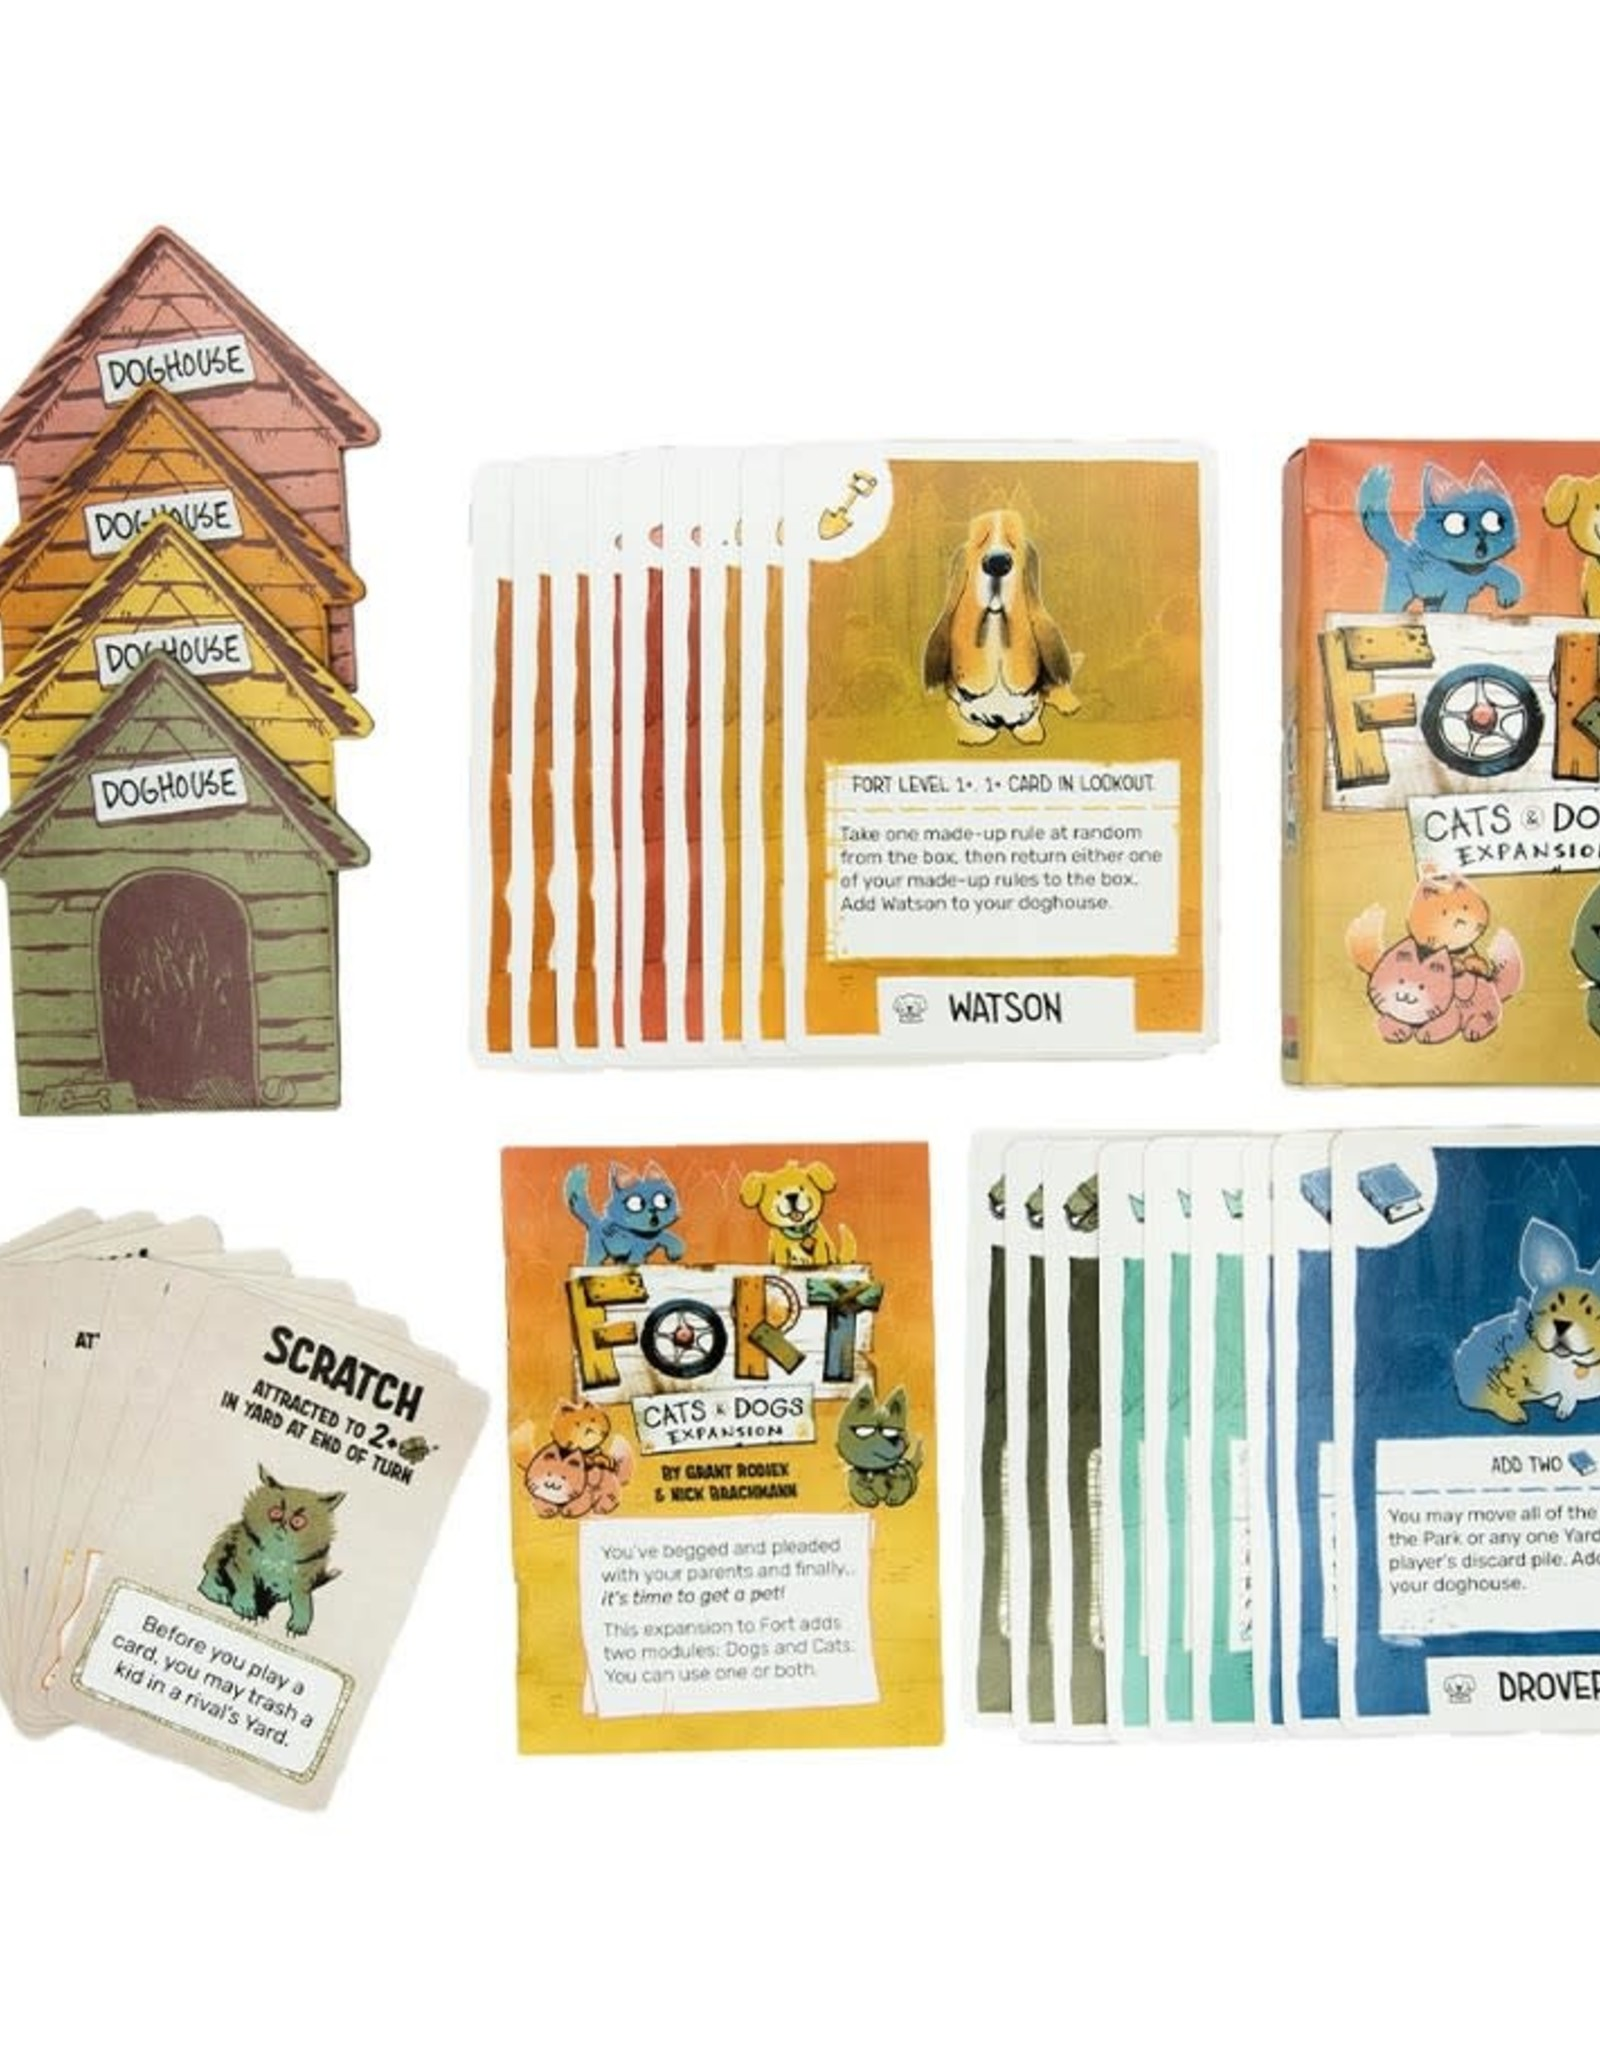 Leder Games (October 2021 - January 2022) Fort  Cats and Dogs Expansion